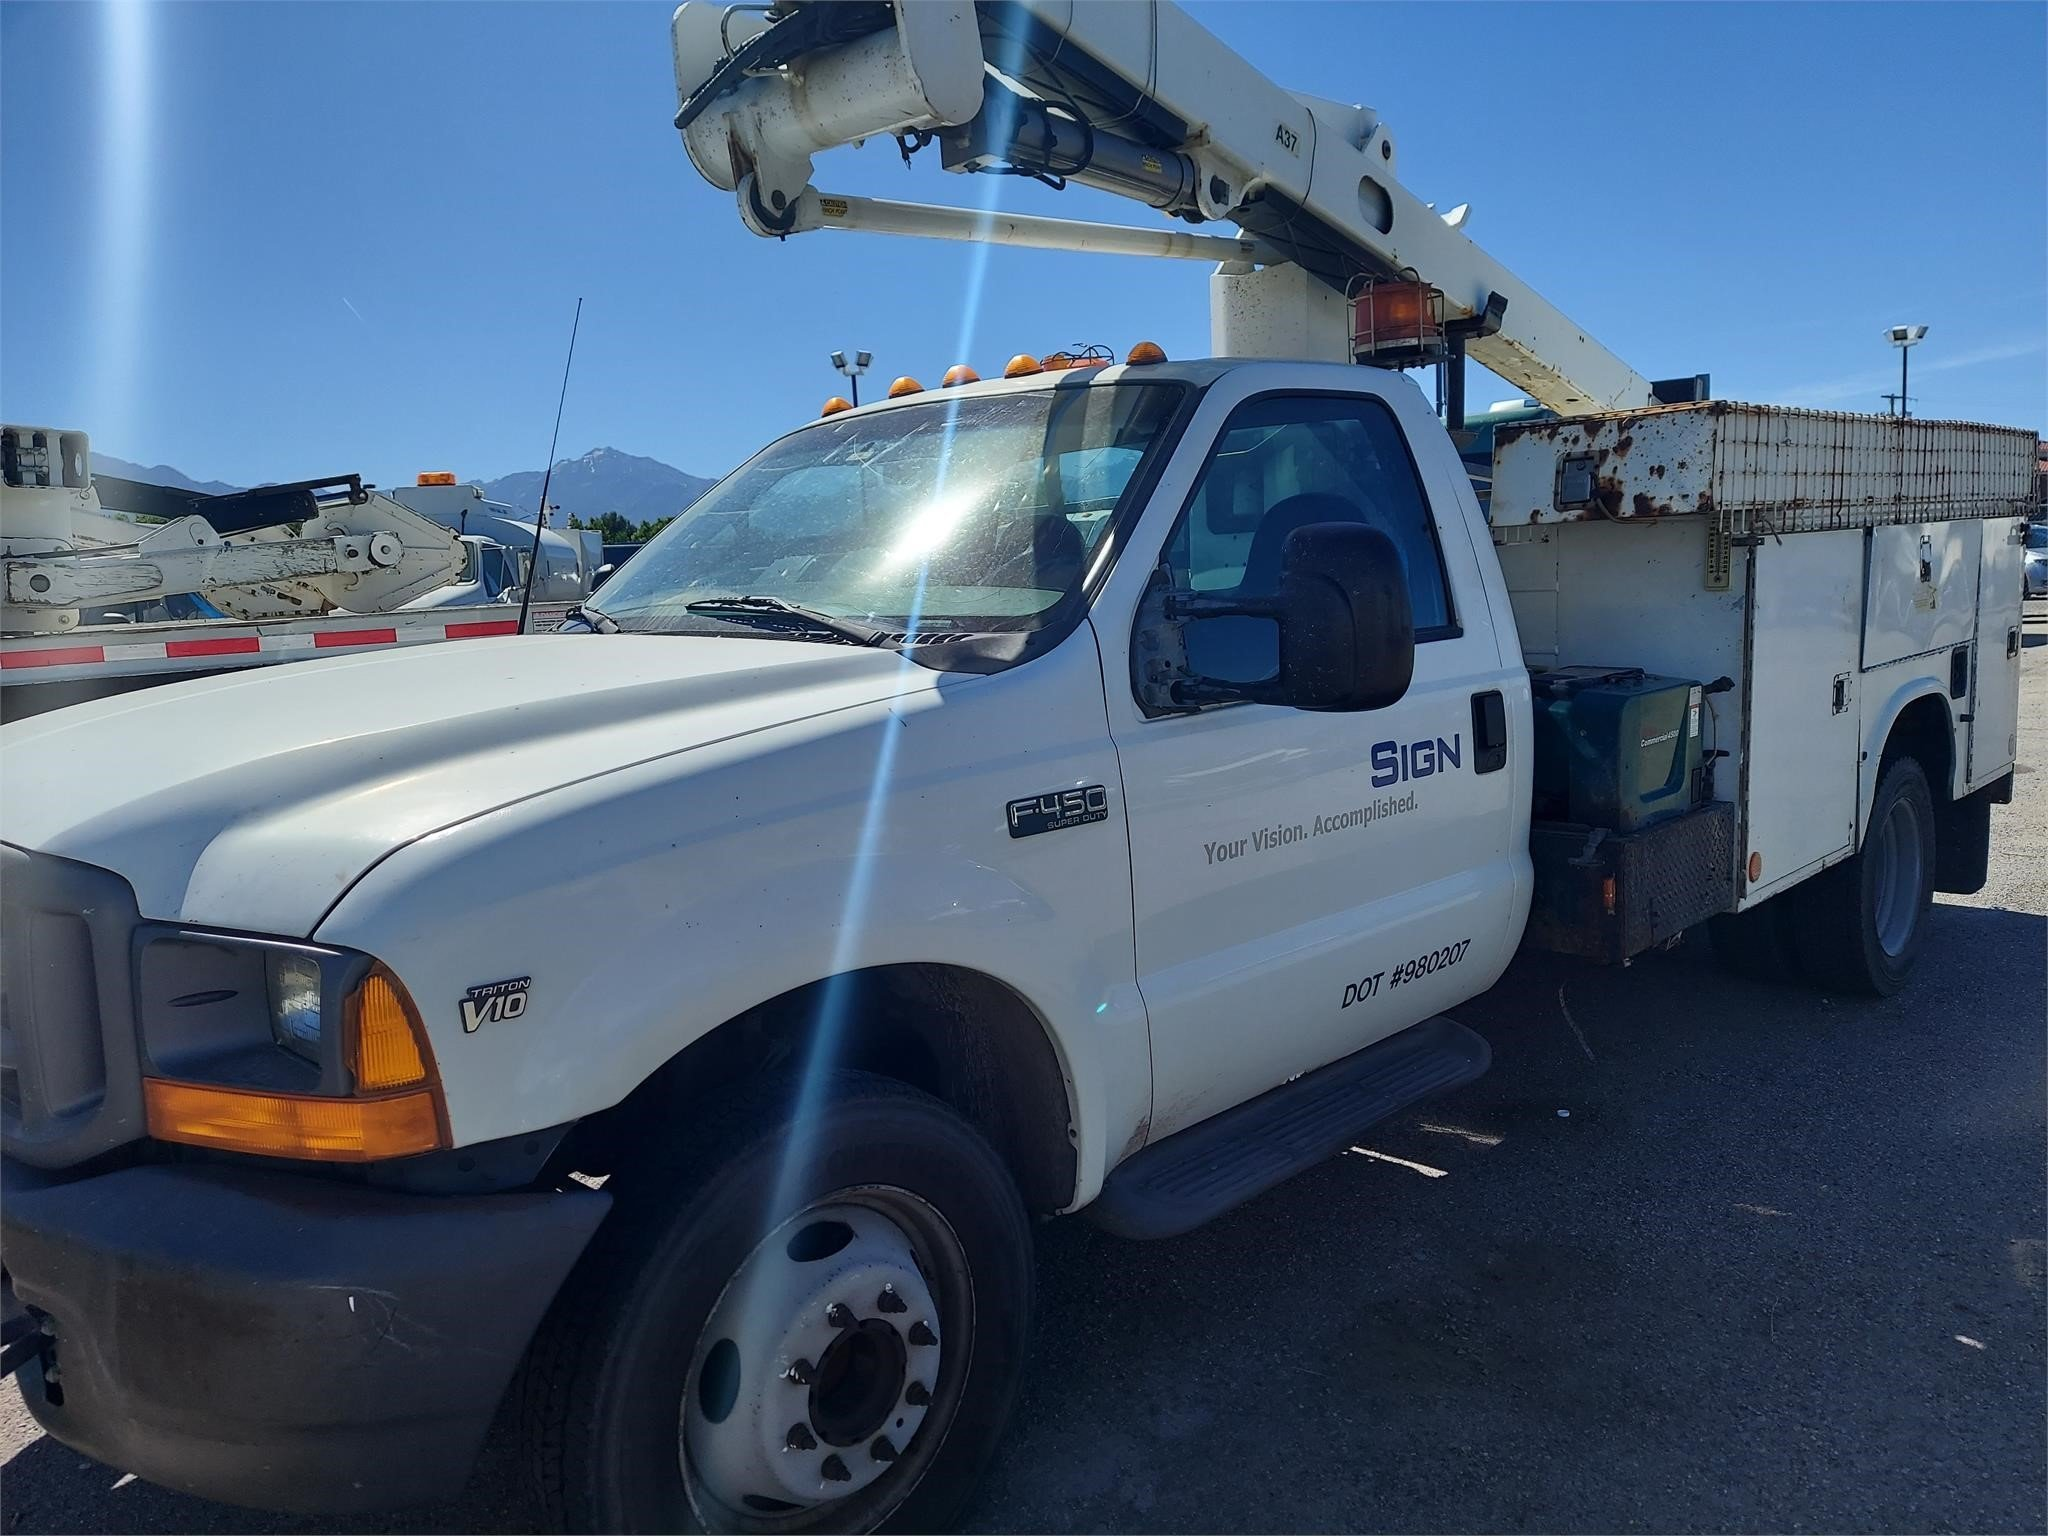 Used, 2001, FORD, F450, Utility Truck - Service Truck